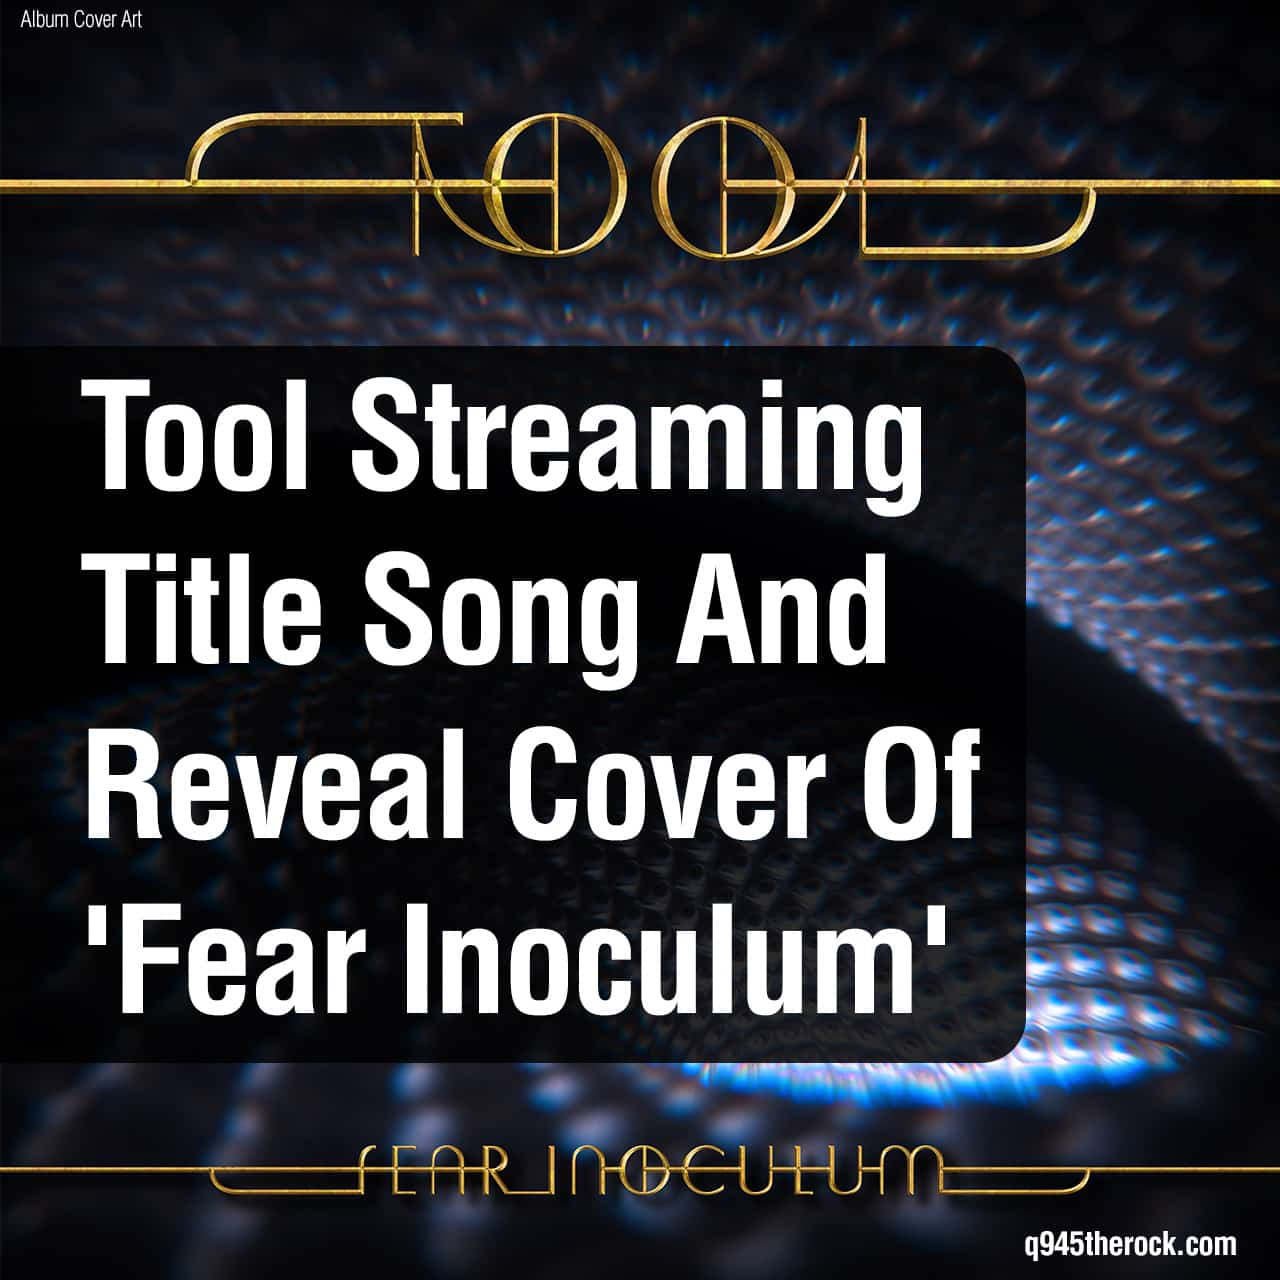 Tool Streaming Title Song And Reveal Cover Of 'Fear Inoculum'